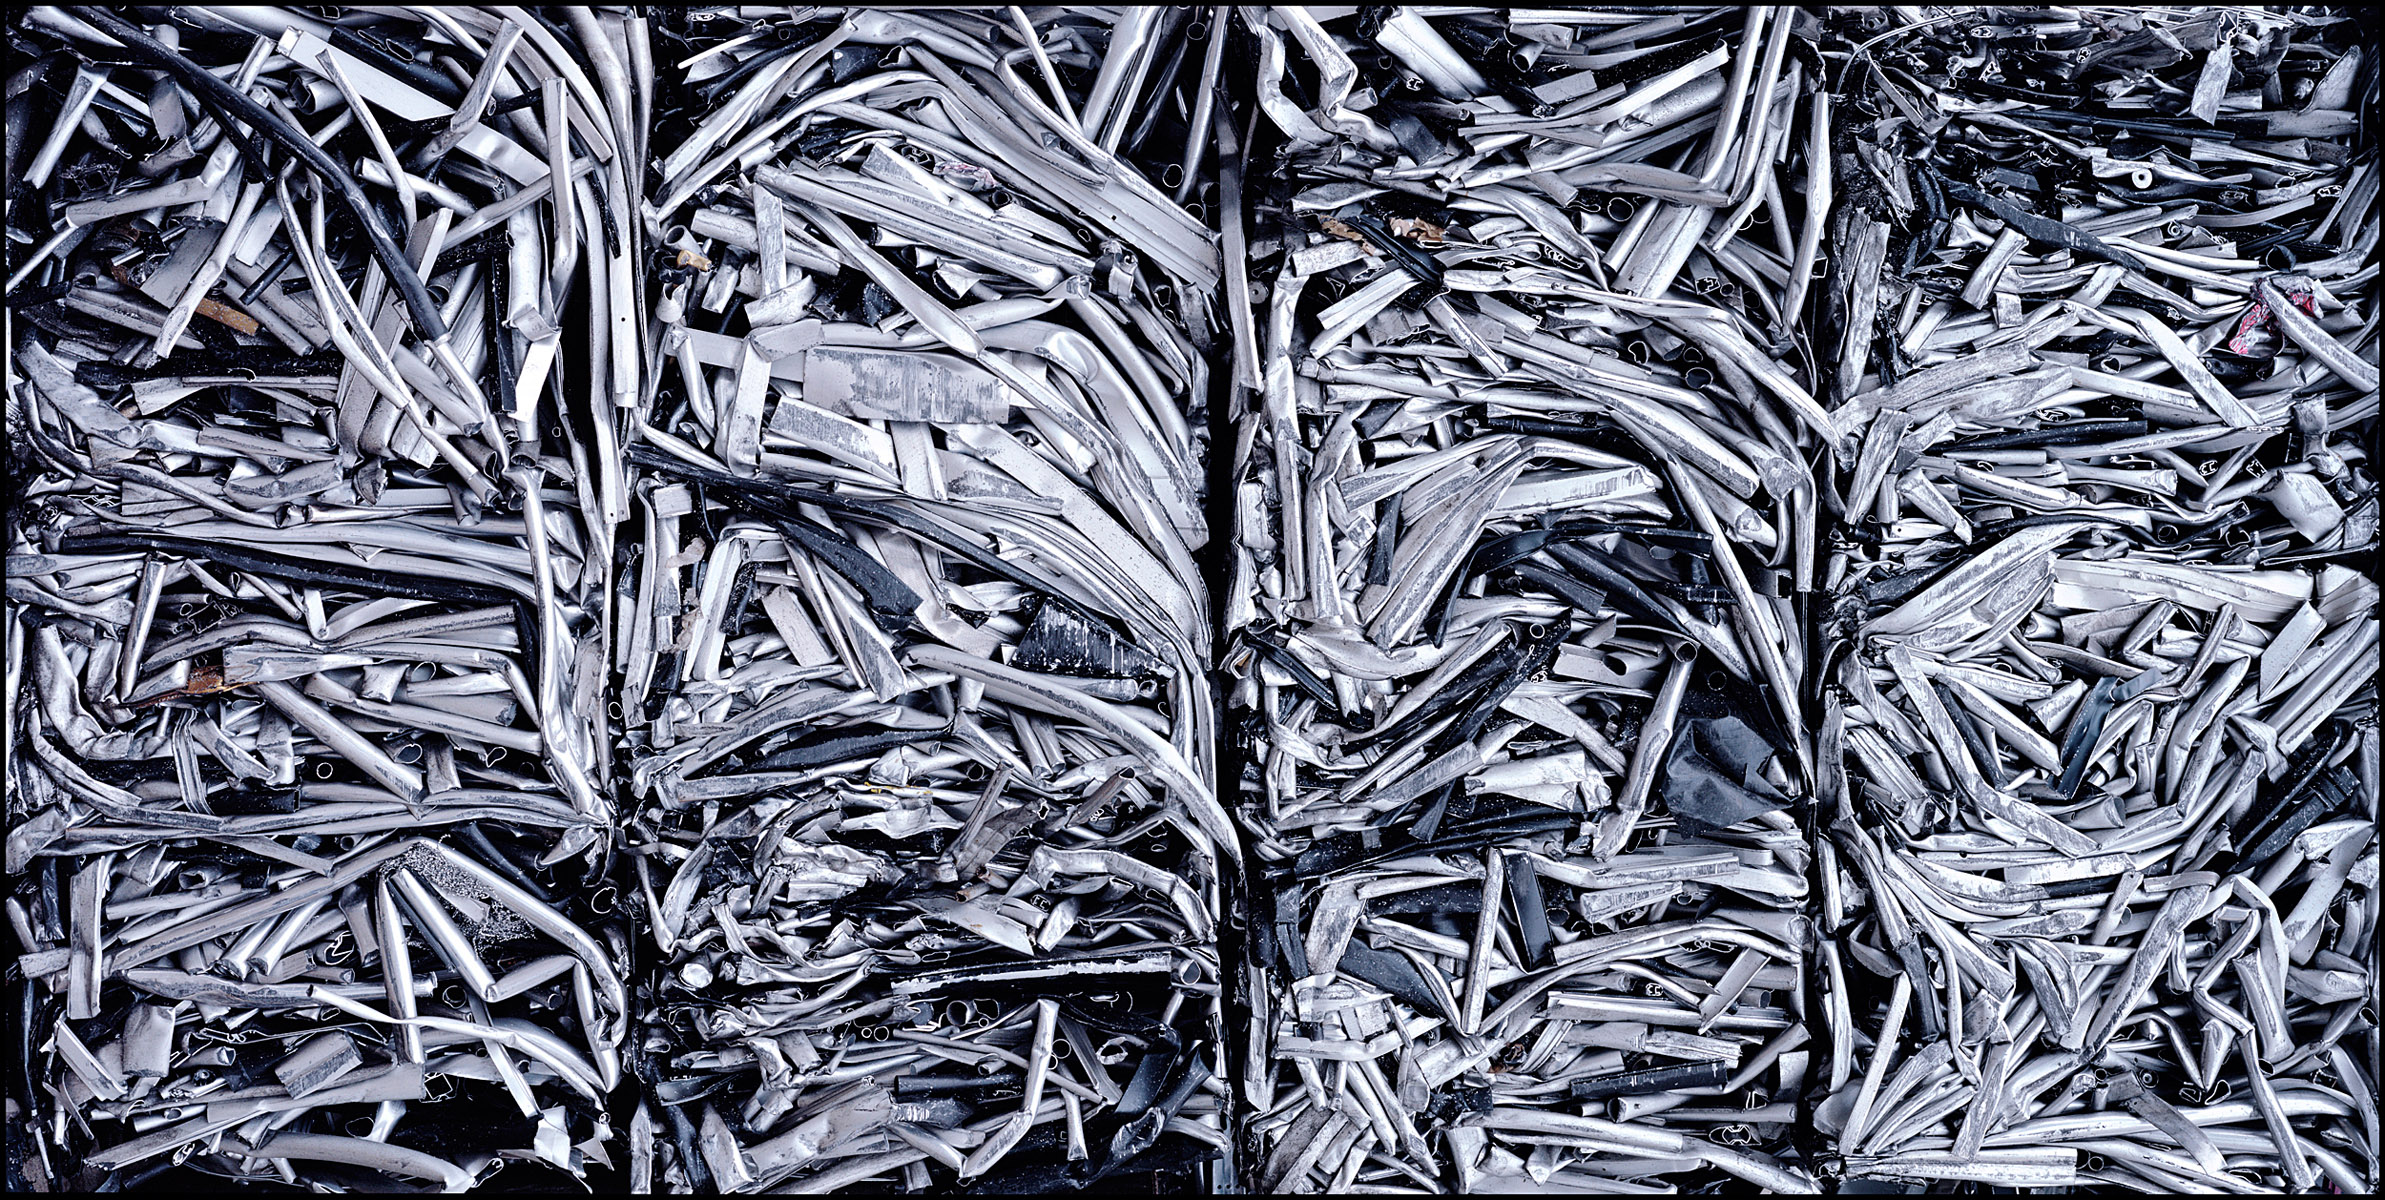 Jan Staller, Crushed Steel Tubing, Syngenta Photo Award